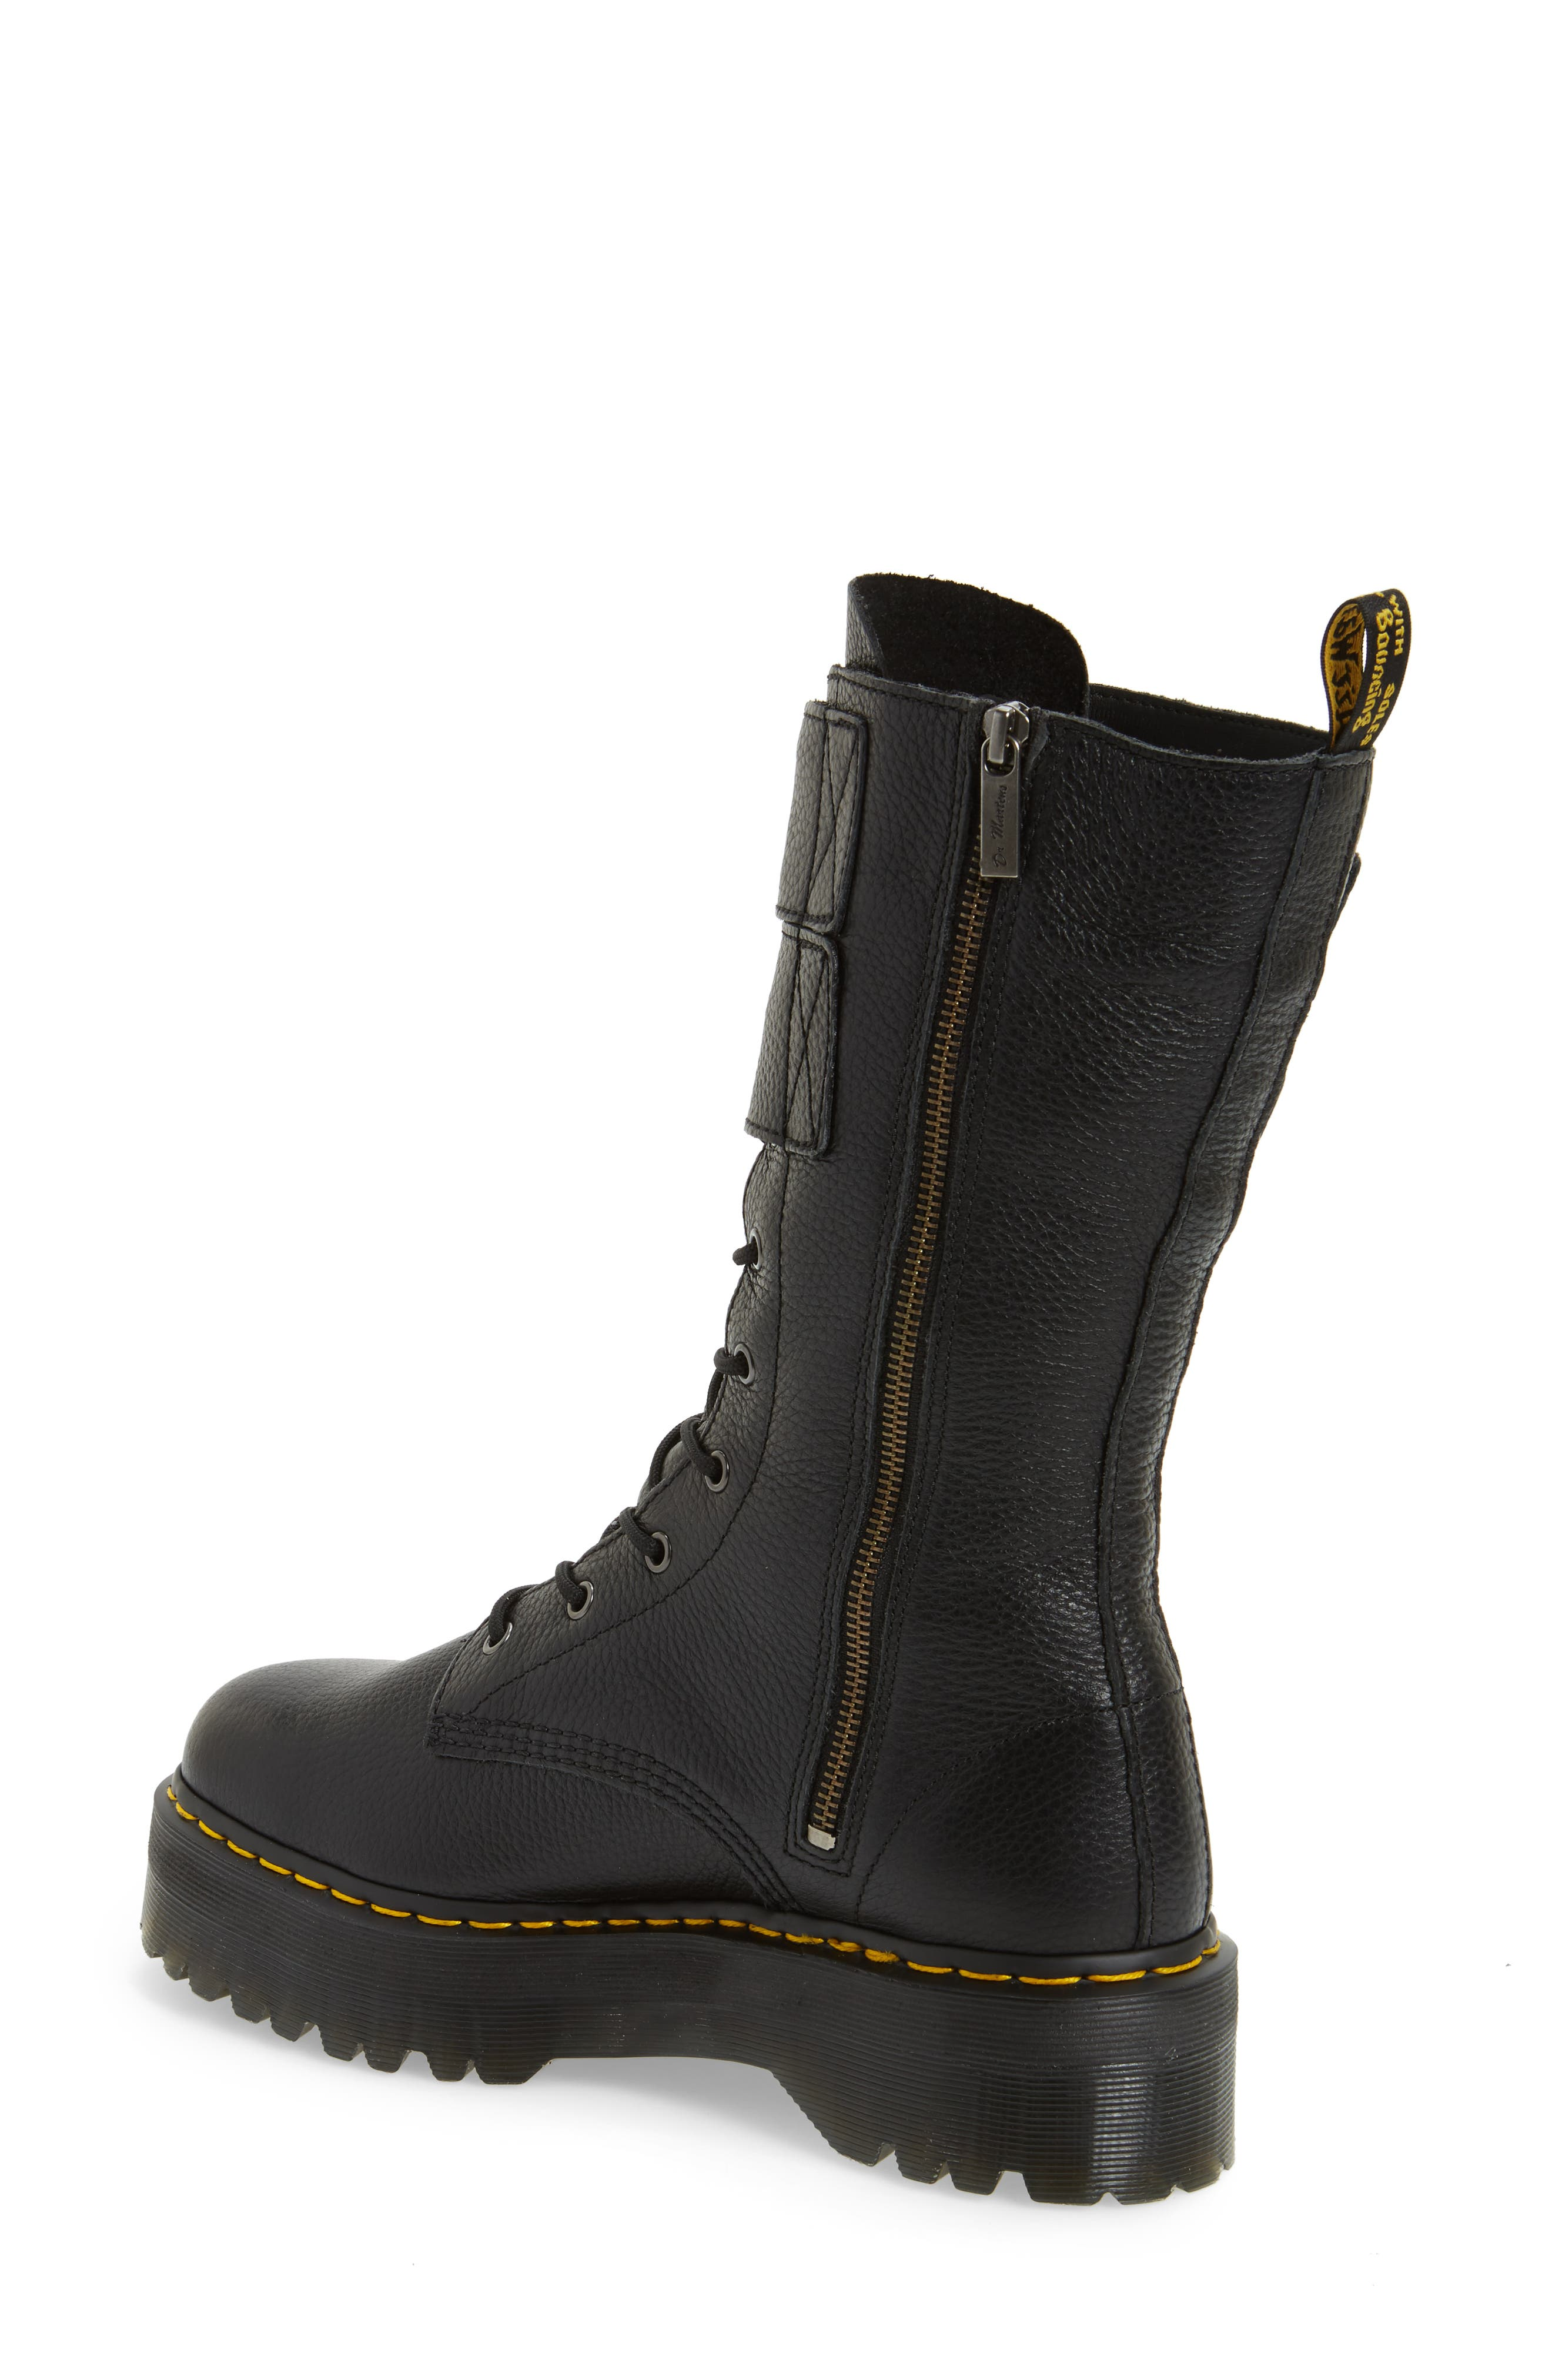 Jagger Combat Boot,                             Alternate thumbnail 2, color,                             Black Leather